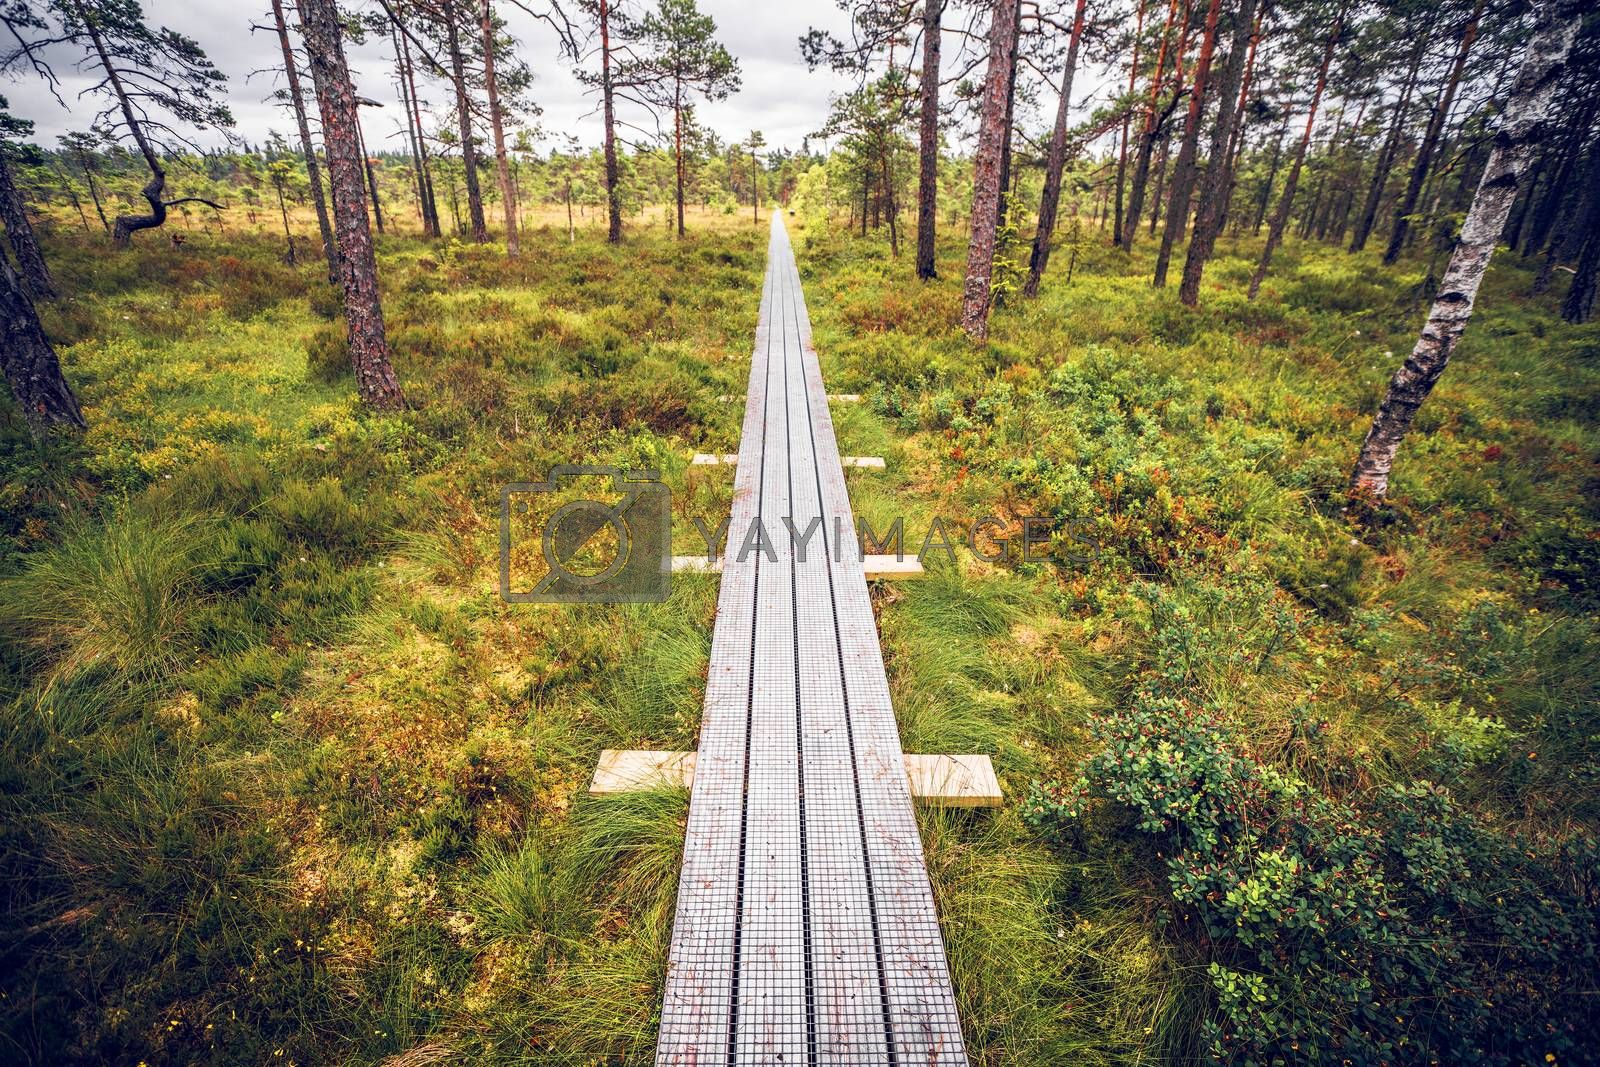 Wooden trail in a swamp with tall tress and green moss